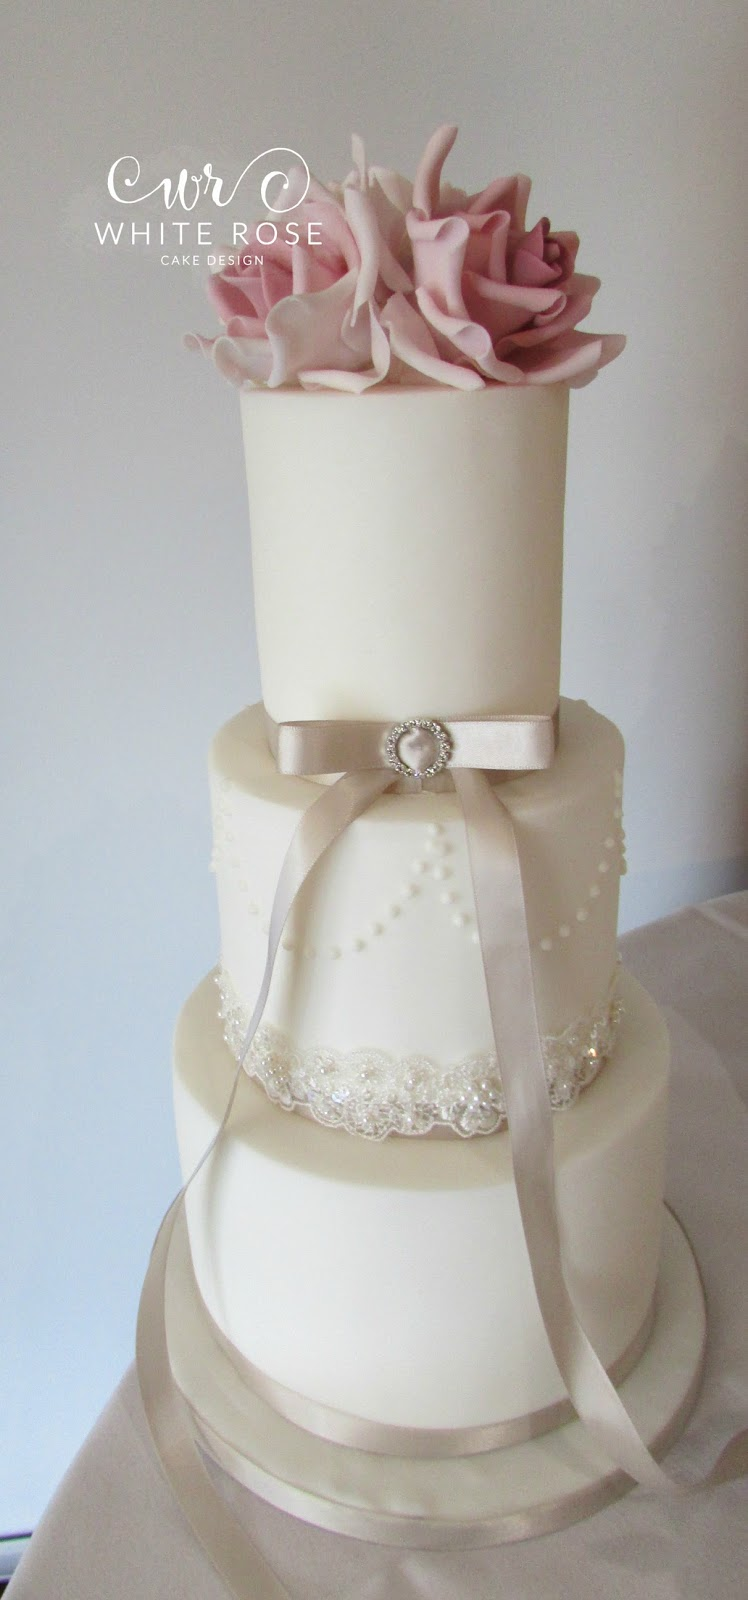 Wedding Cake Three Tiers With Crisp Edges Finished Sparkly Lace And A Brooch Piped Pearls On The Middle Tier Add Extra Interest